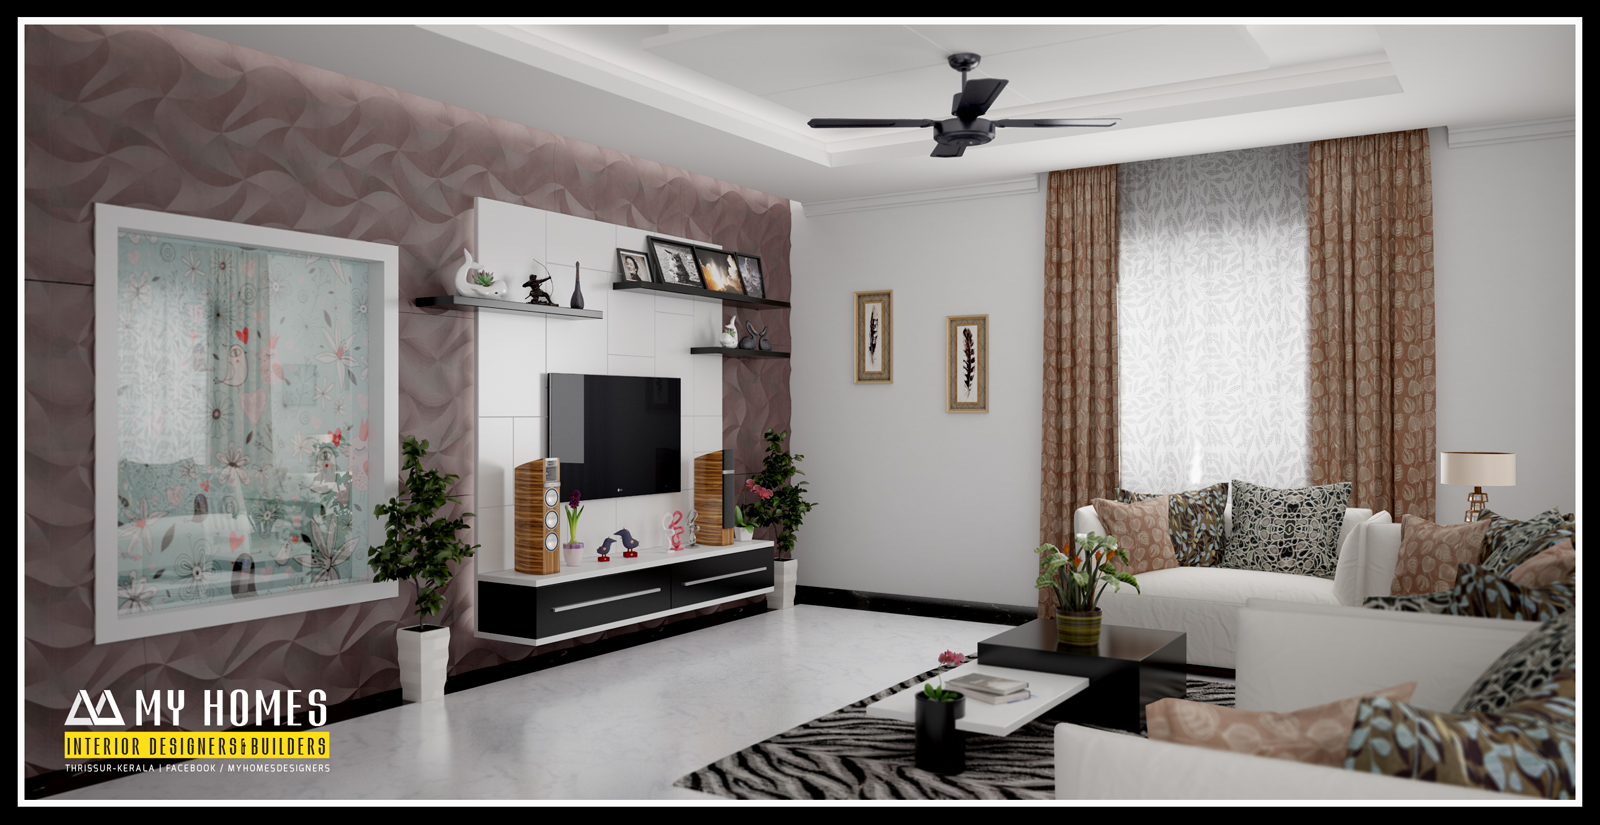 Kerala interior design ideas from designing company thrissur - Interior decoration of homes ...